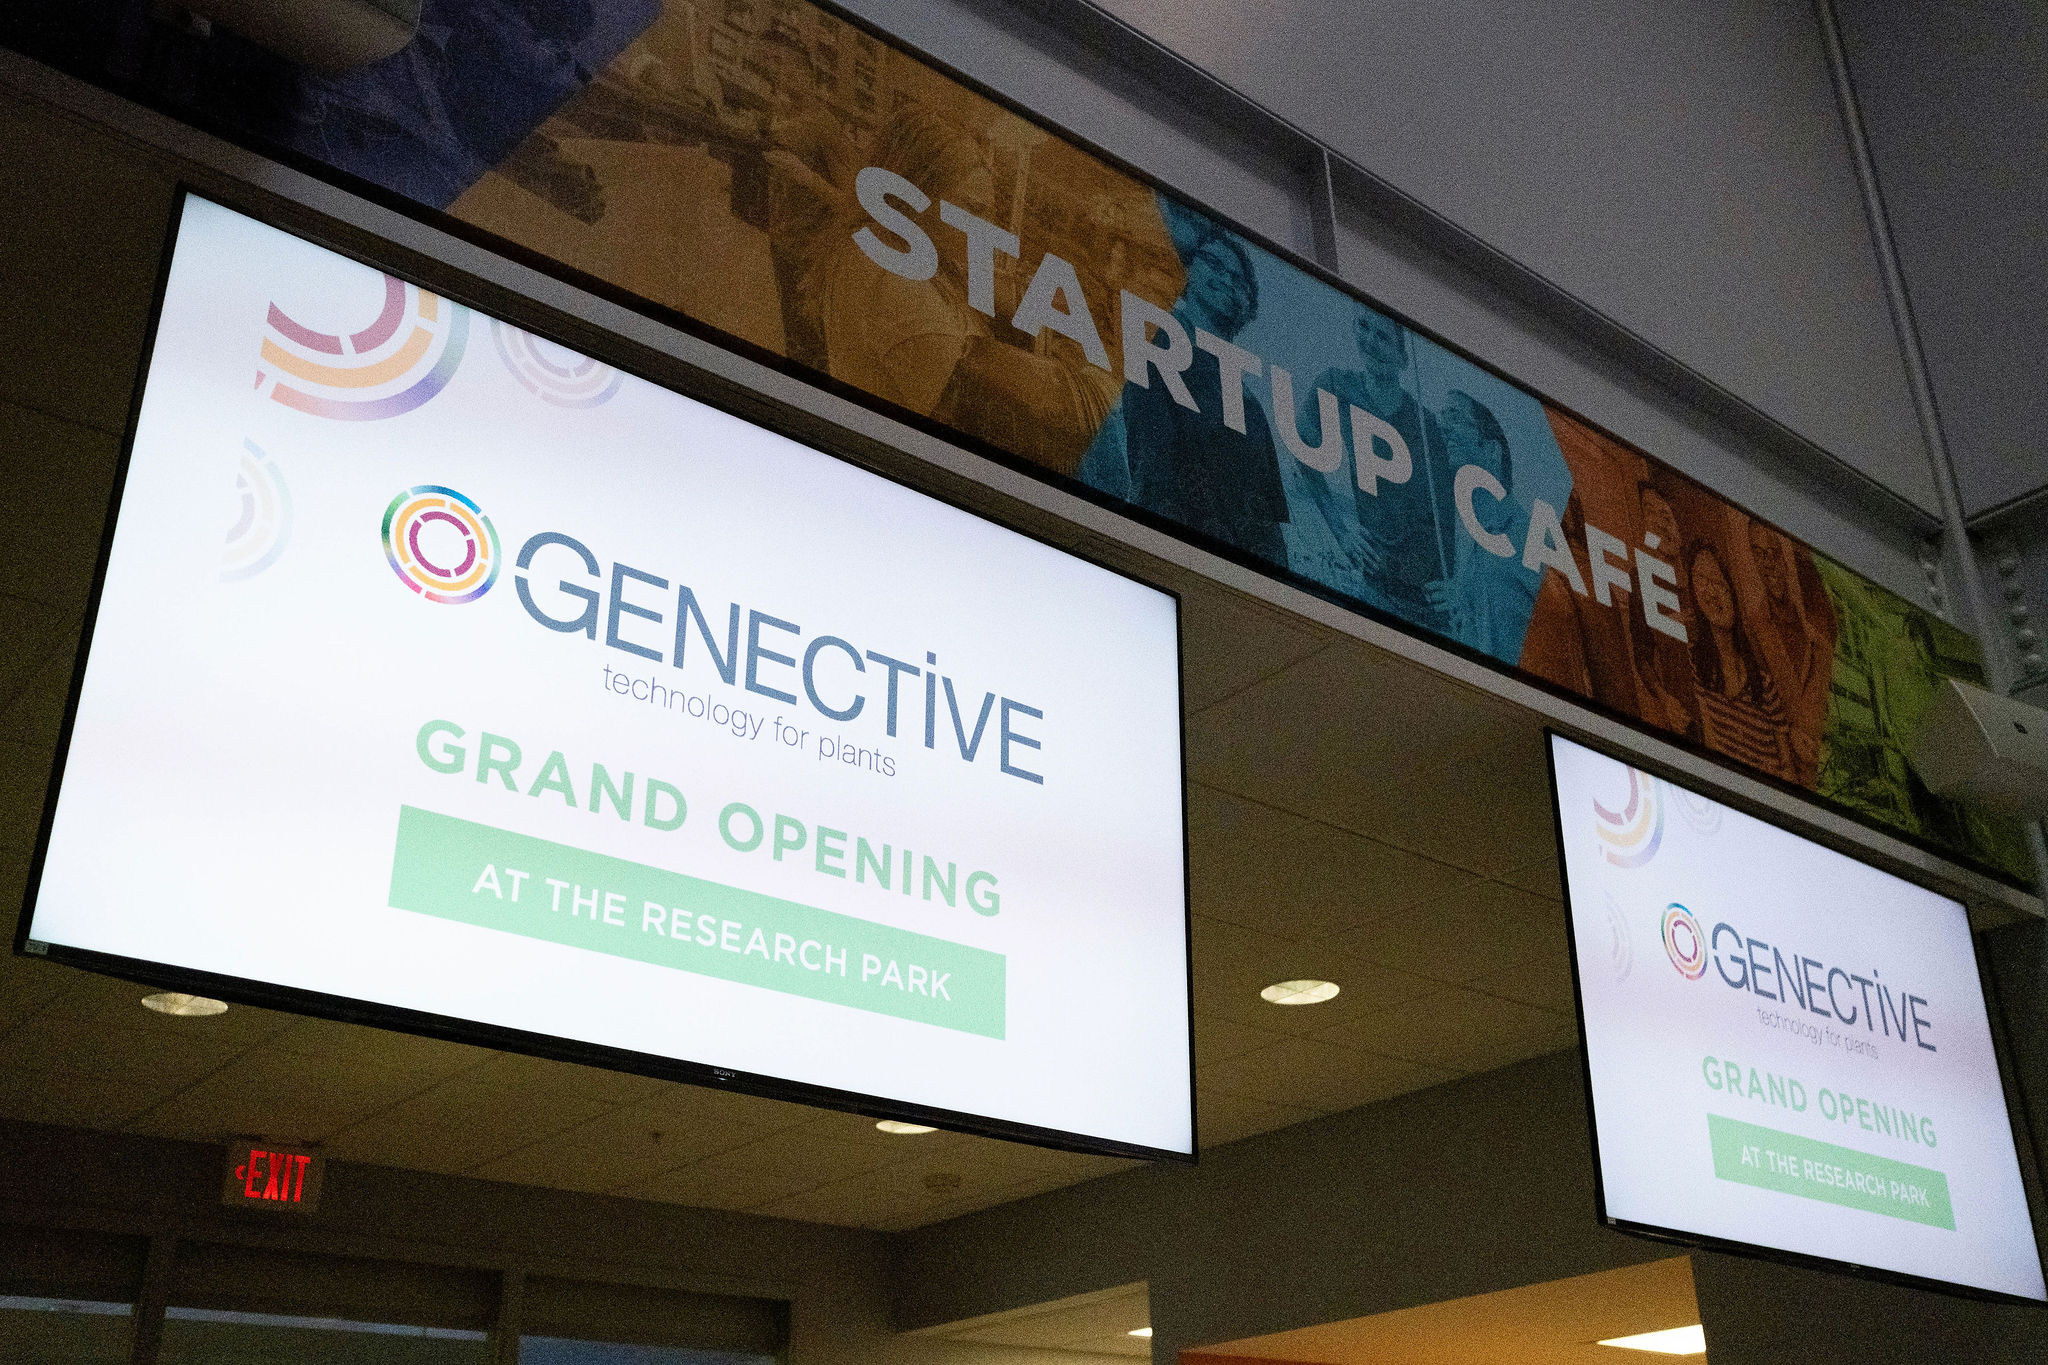 Genective Grand Opening